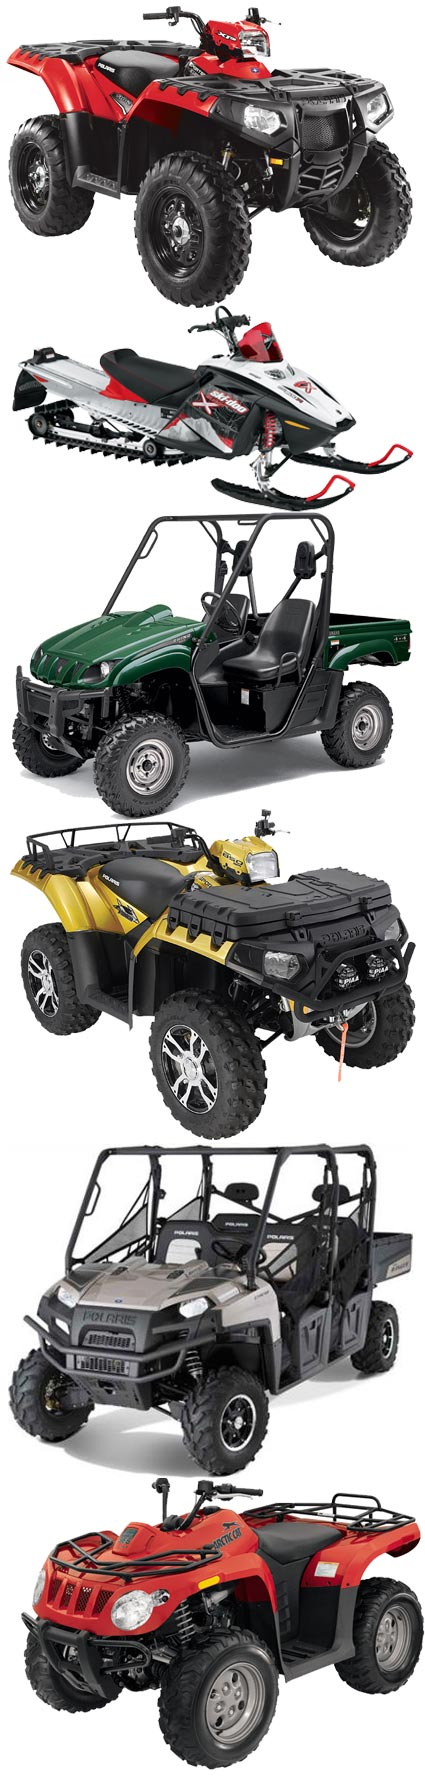 Ultimate ATV & Offroad Training vehicles